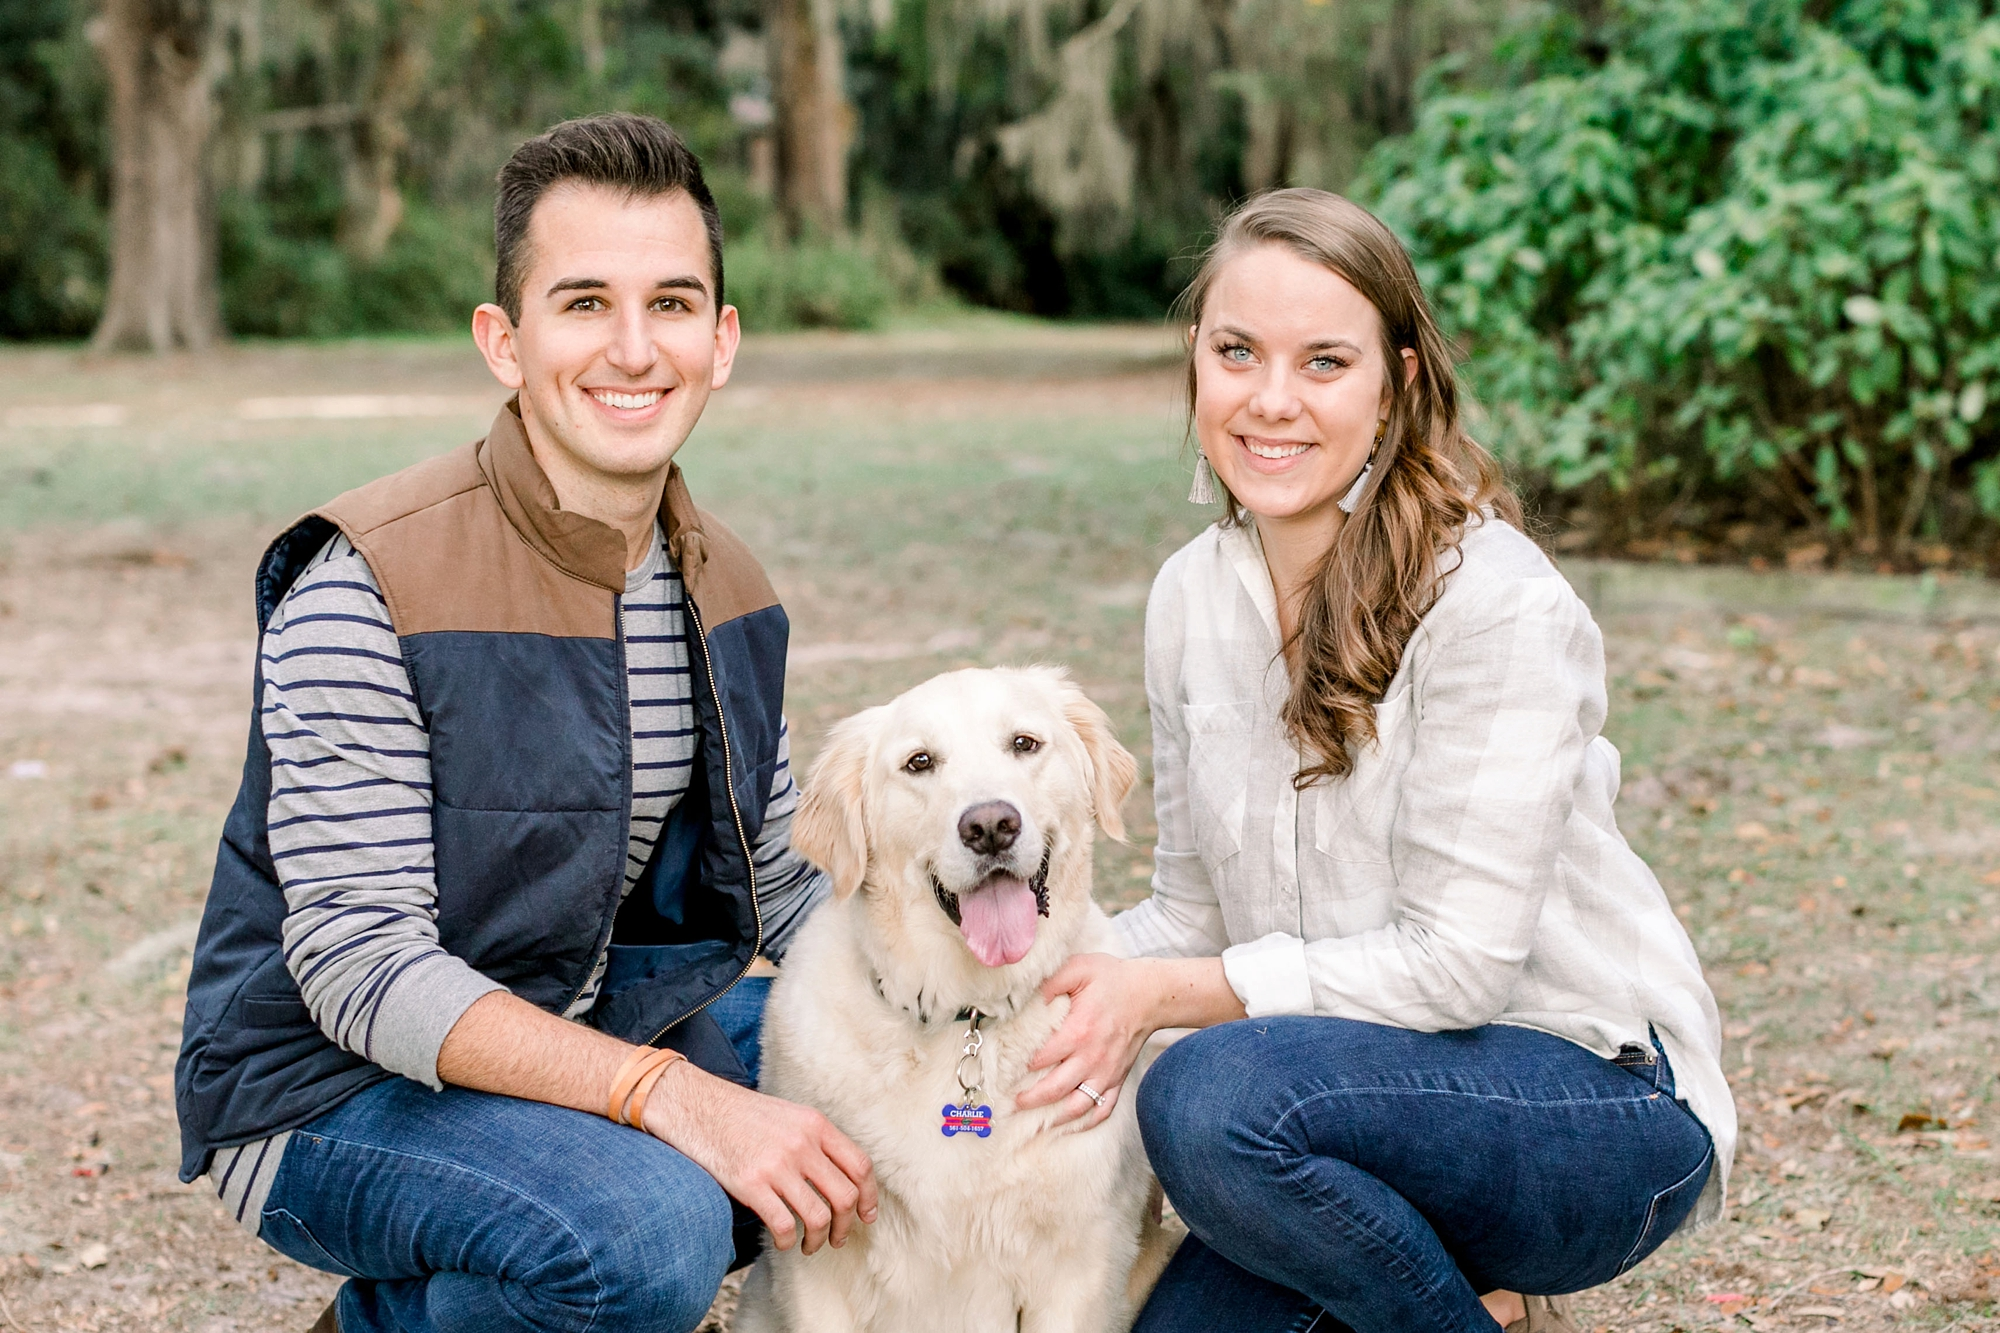 Natalie Broach Photography | Jacksonville Lifestyle Photography | Family photoshoot with pet | Couple Photoshoot